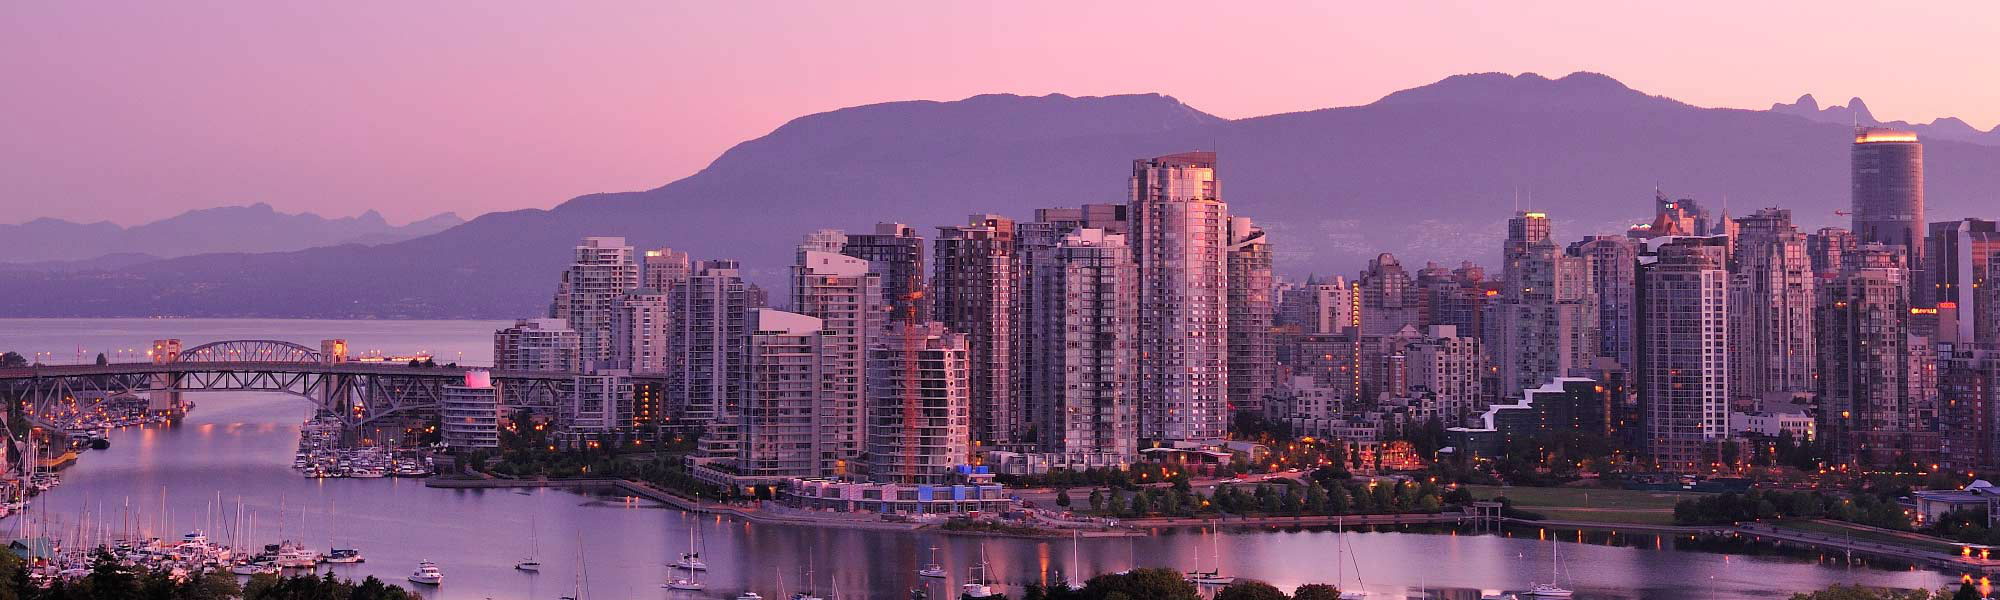 vancouver-evening